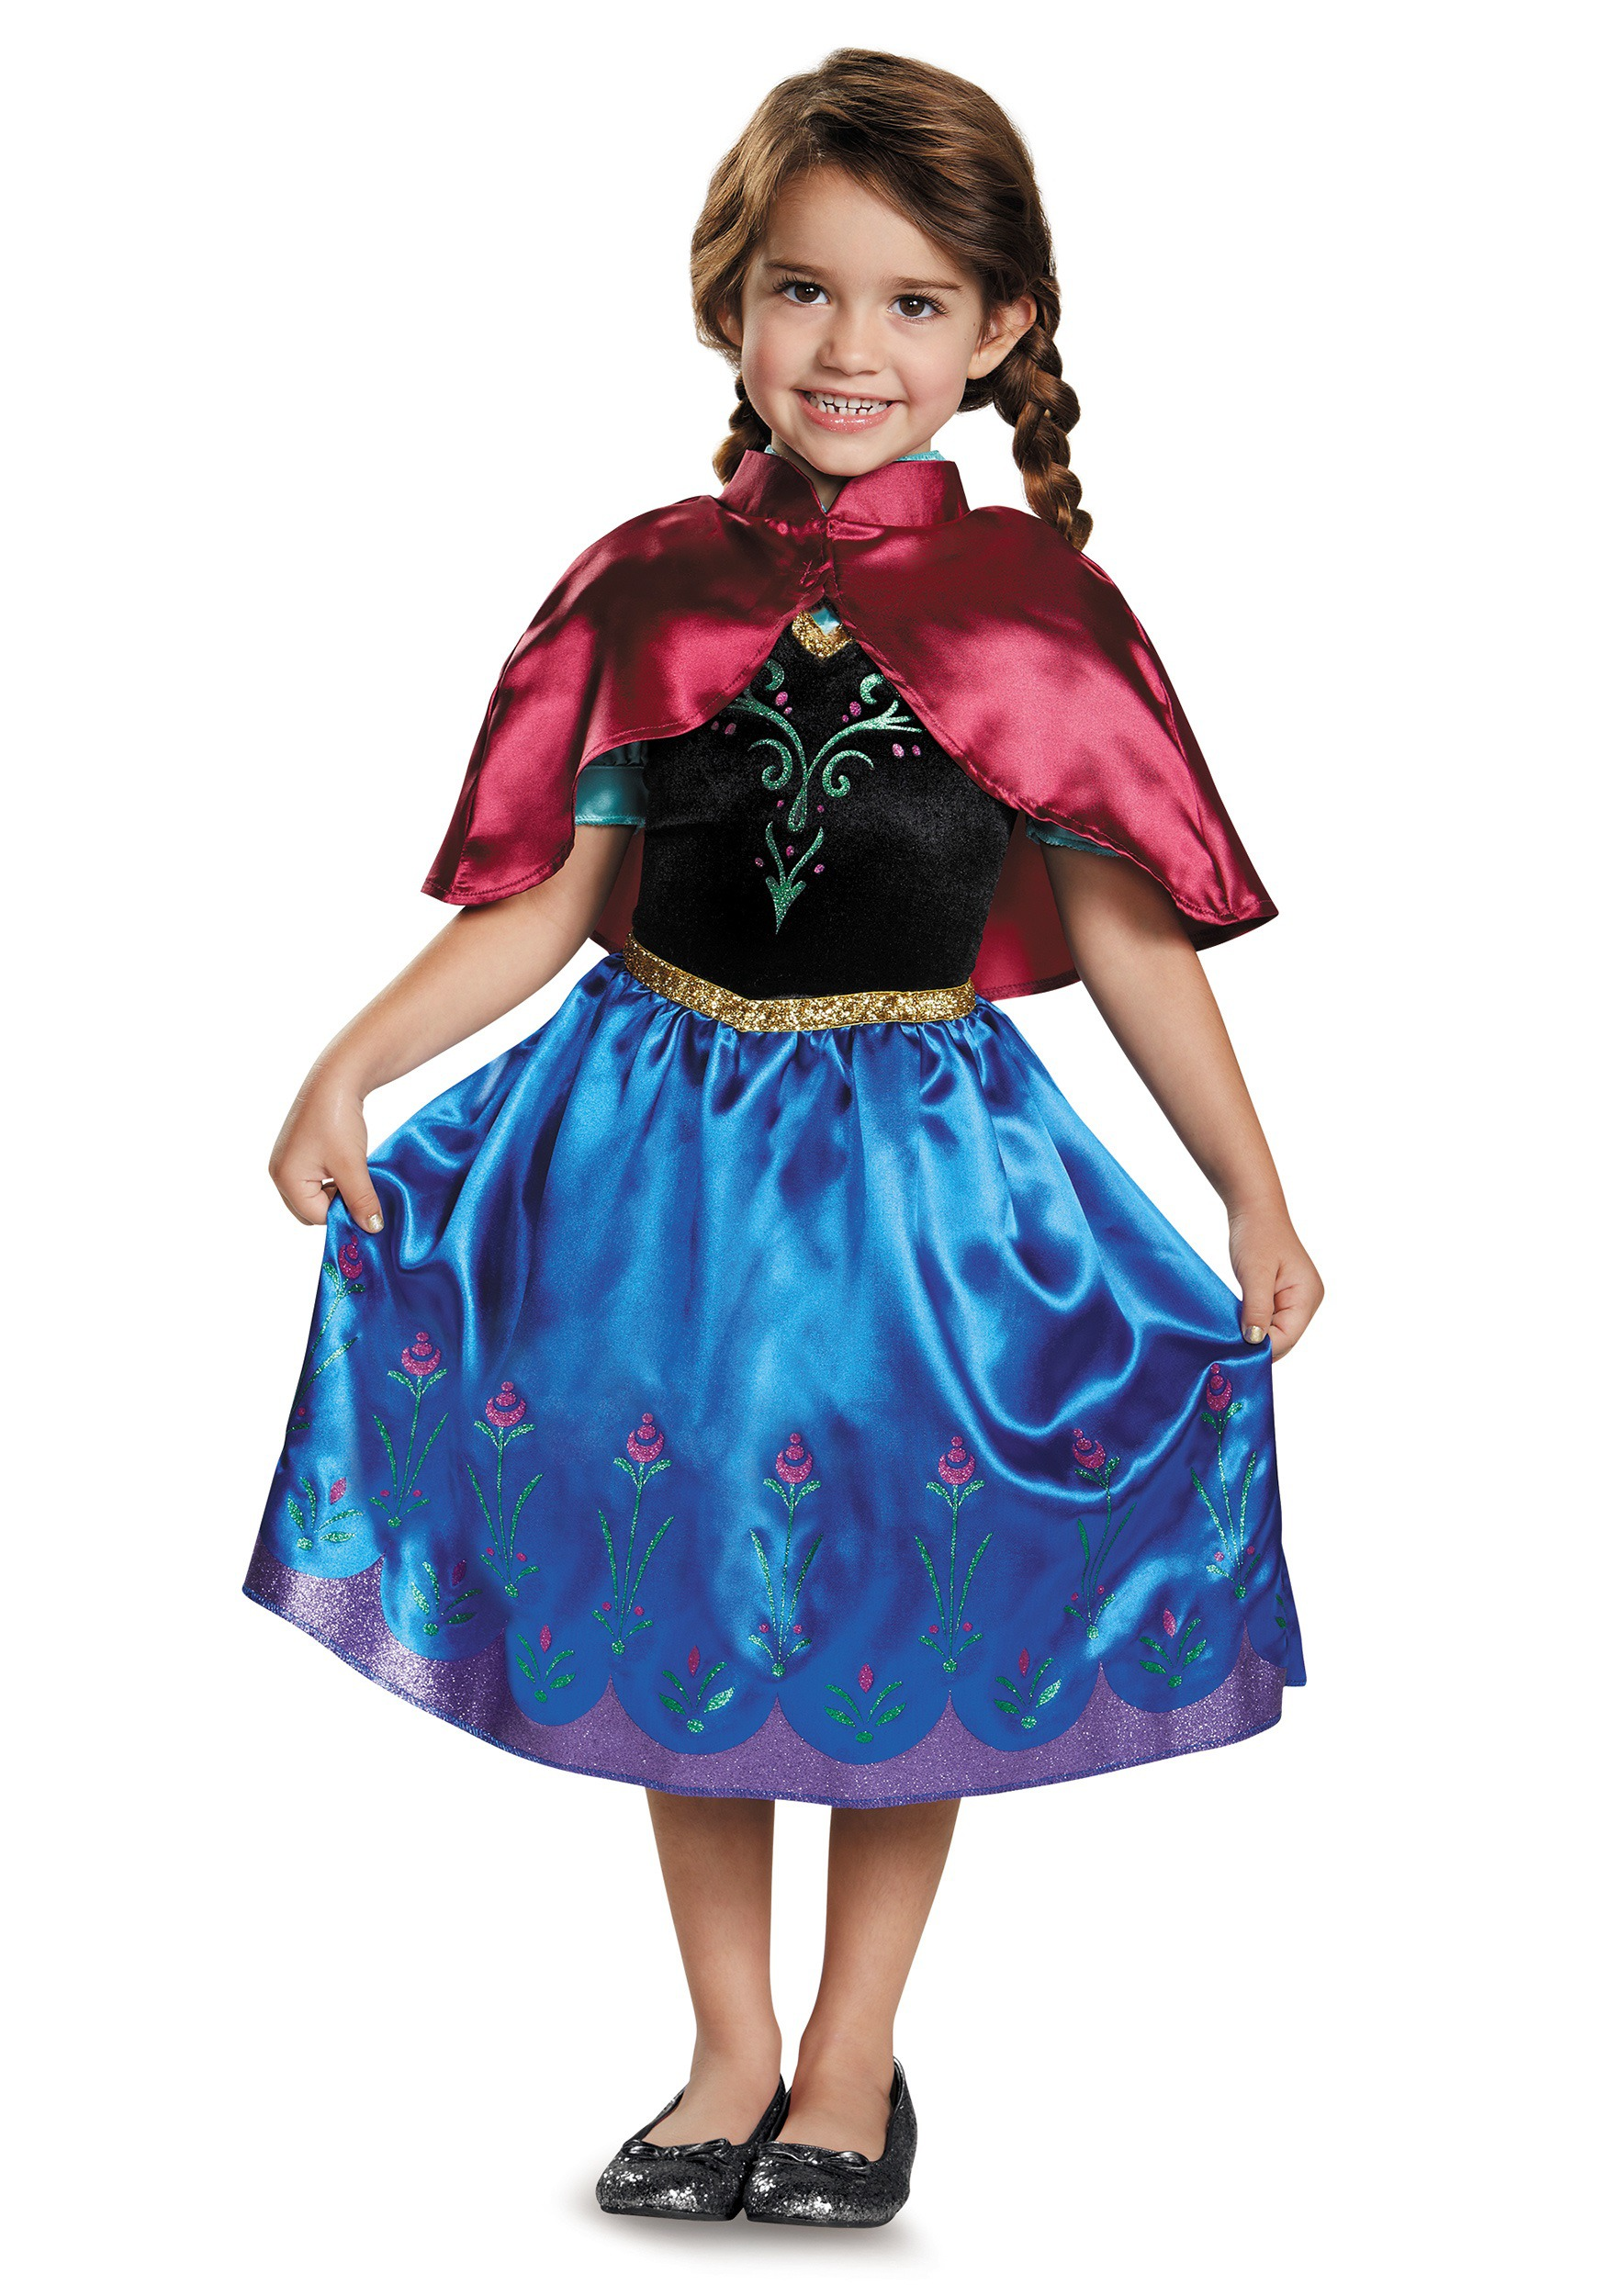 Frozen Traveling Anna Classic Toddler Costume  sc 1 st  Fun.com & Frozen Traveling Anna Classic Costume for toddler